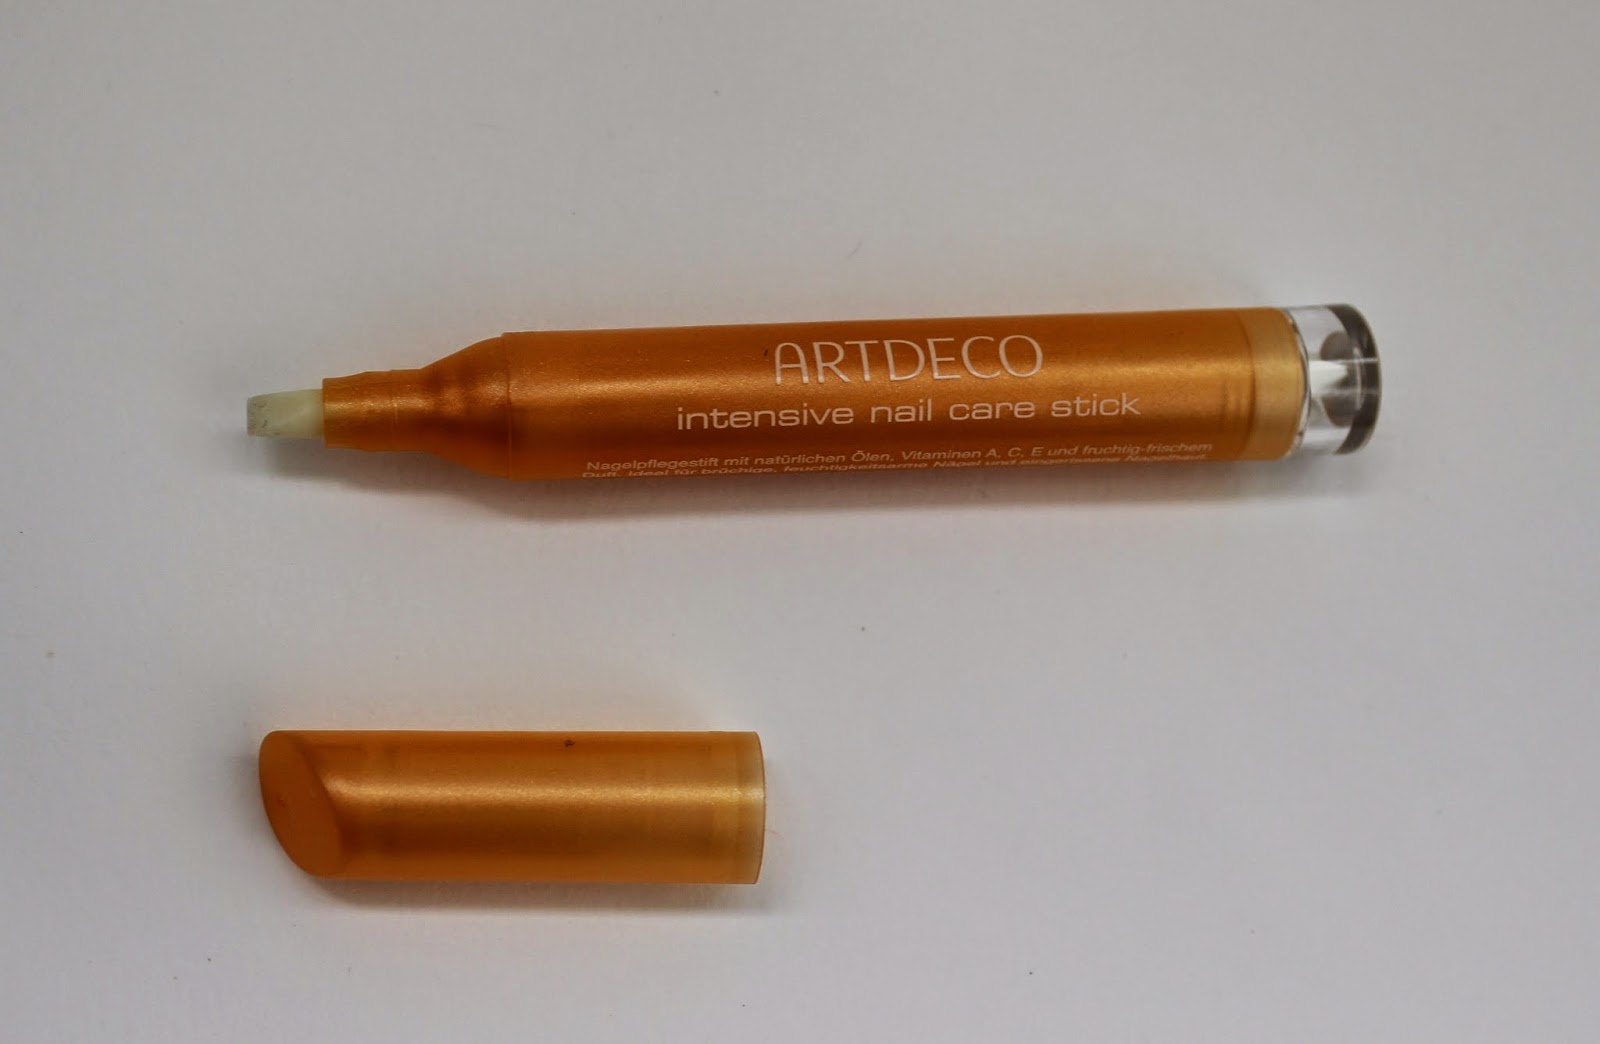 Artdeco intensive nail care stick